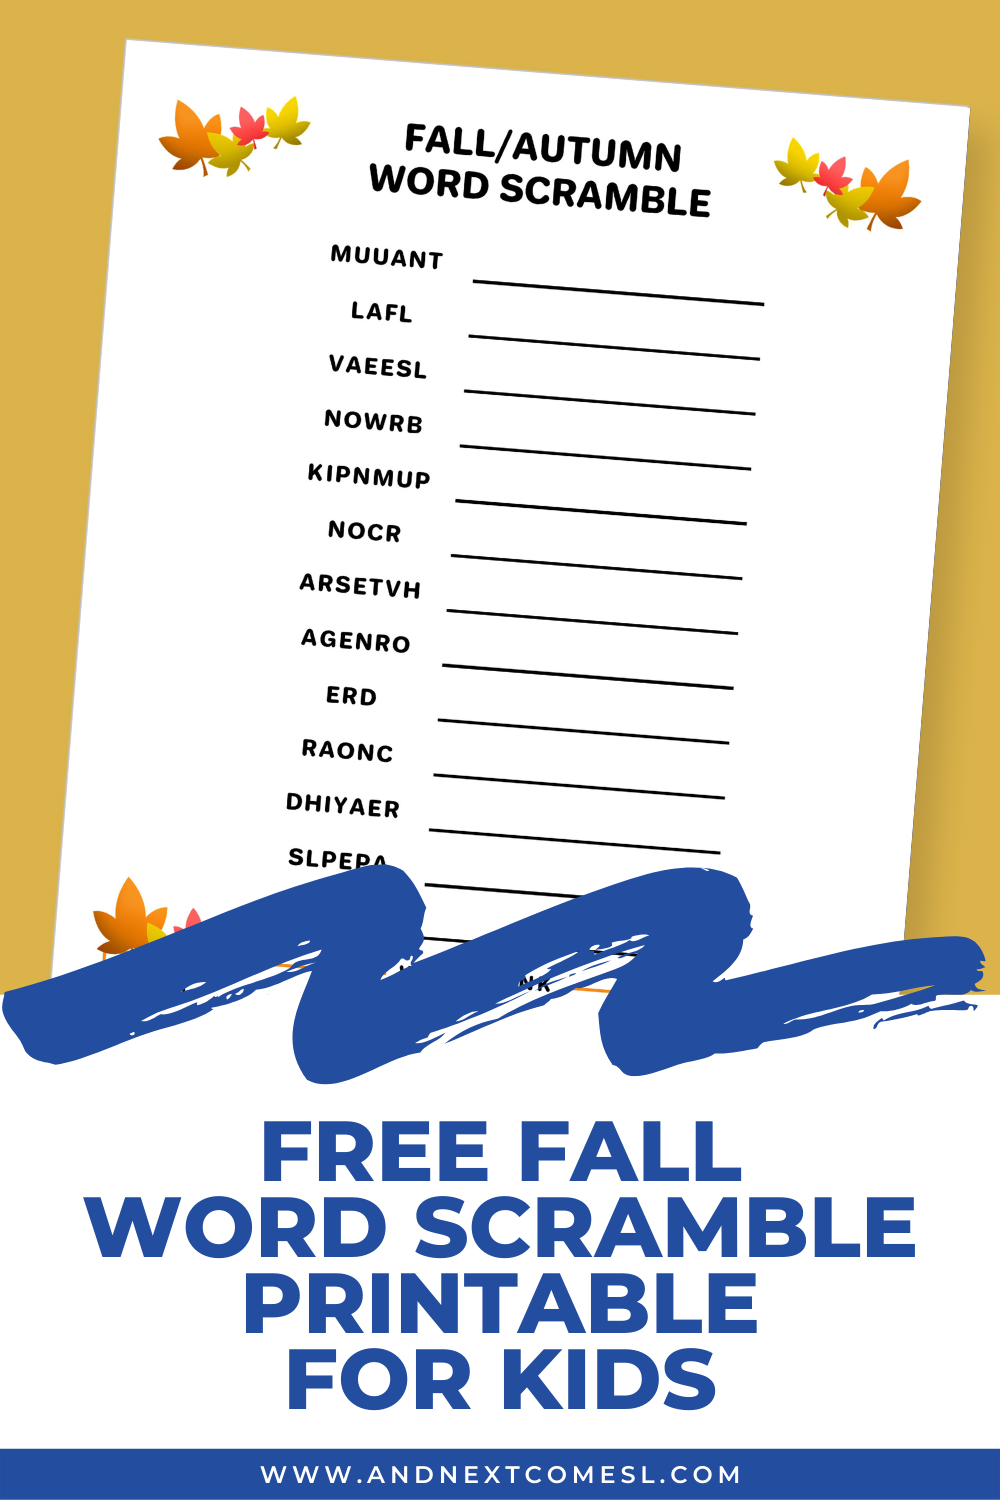 Free printable fall word scramble game for kids (with answers!)